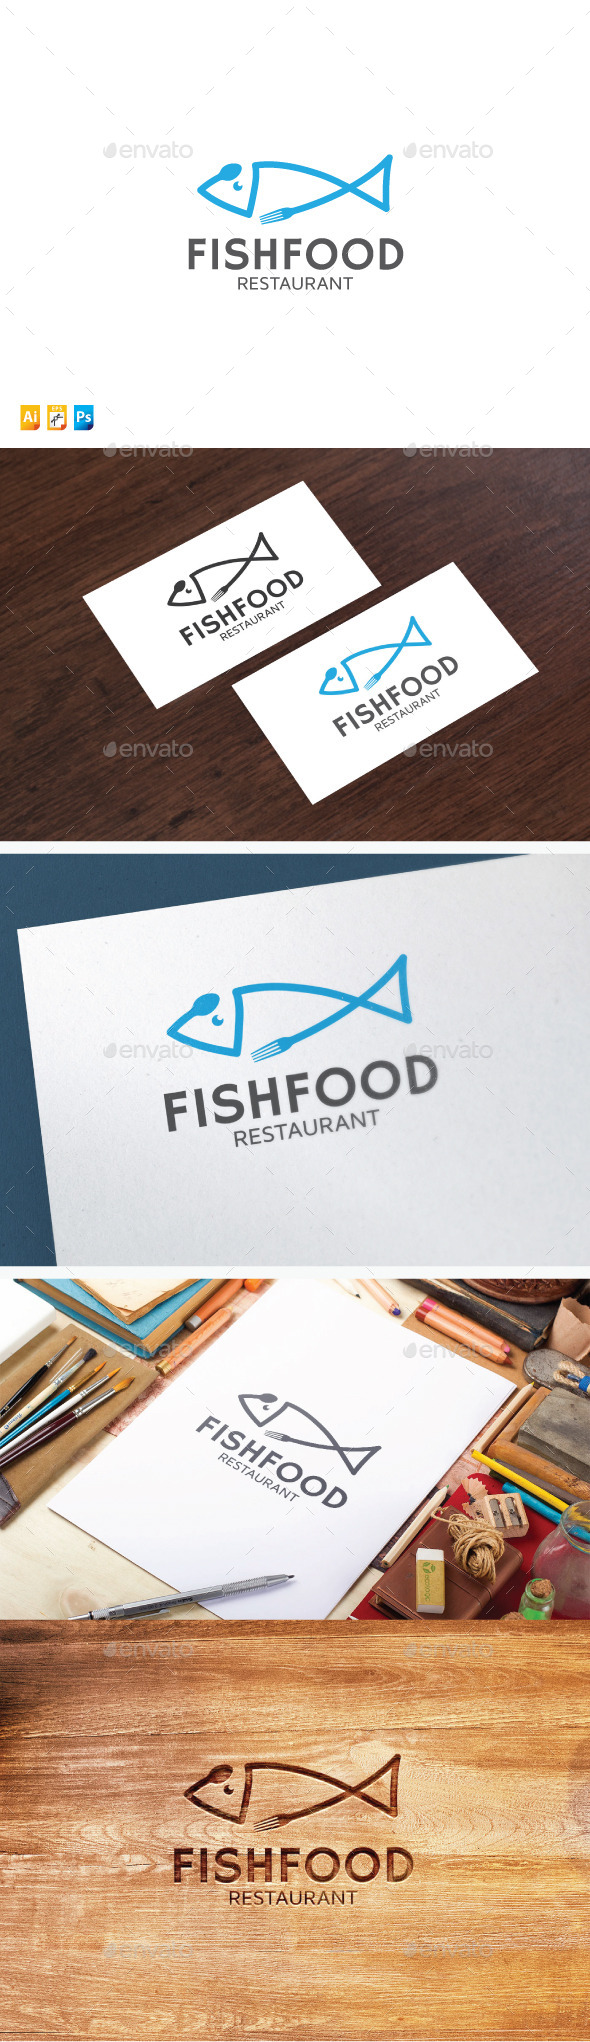 Fish Food Restaurant